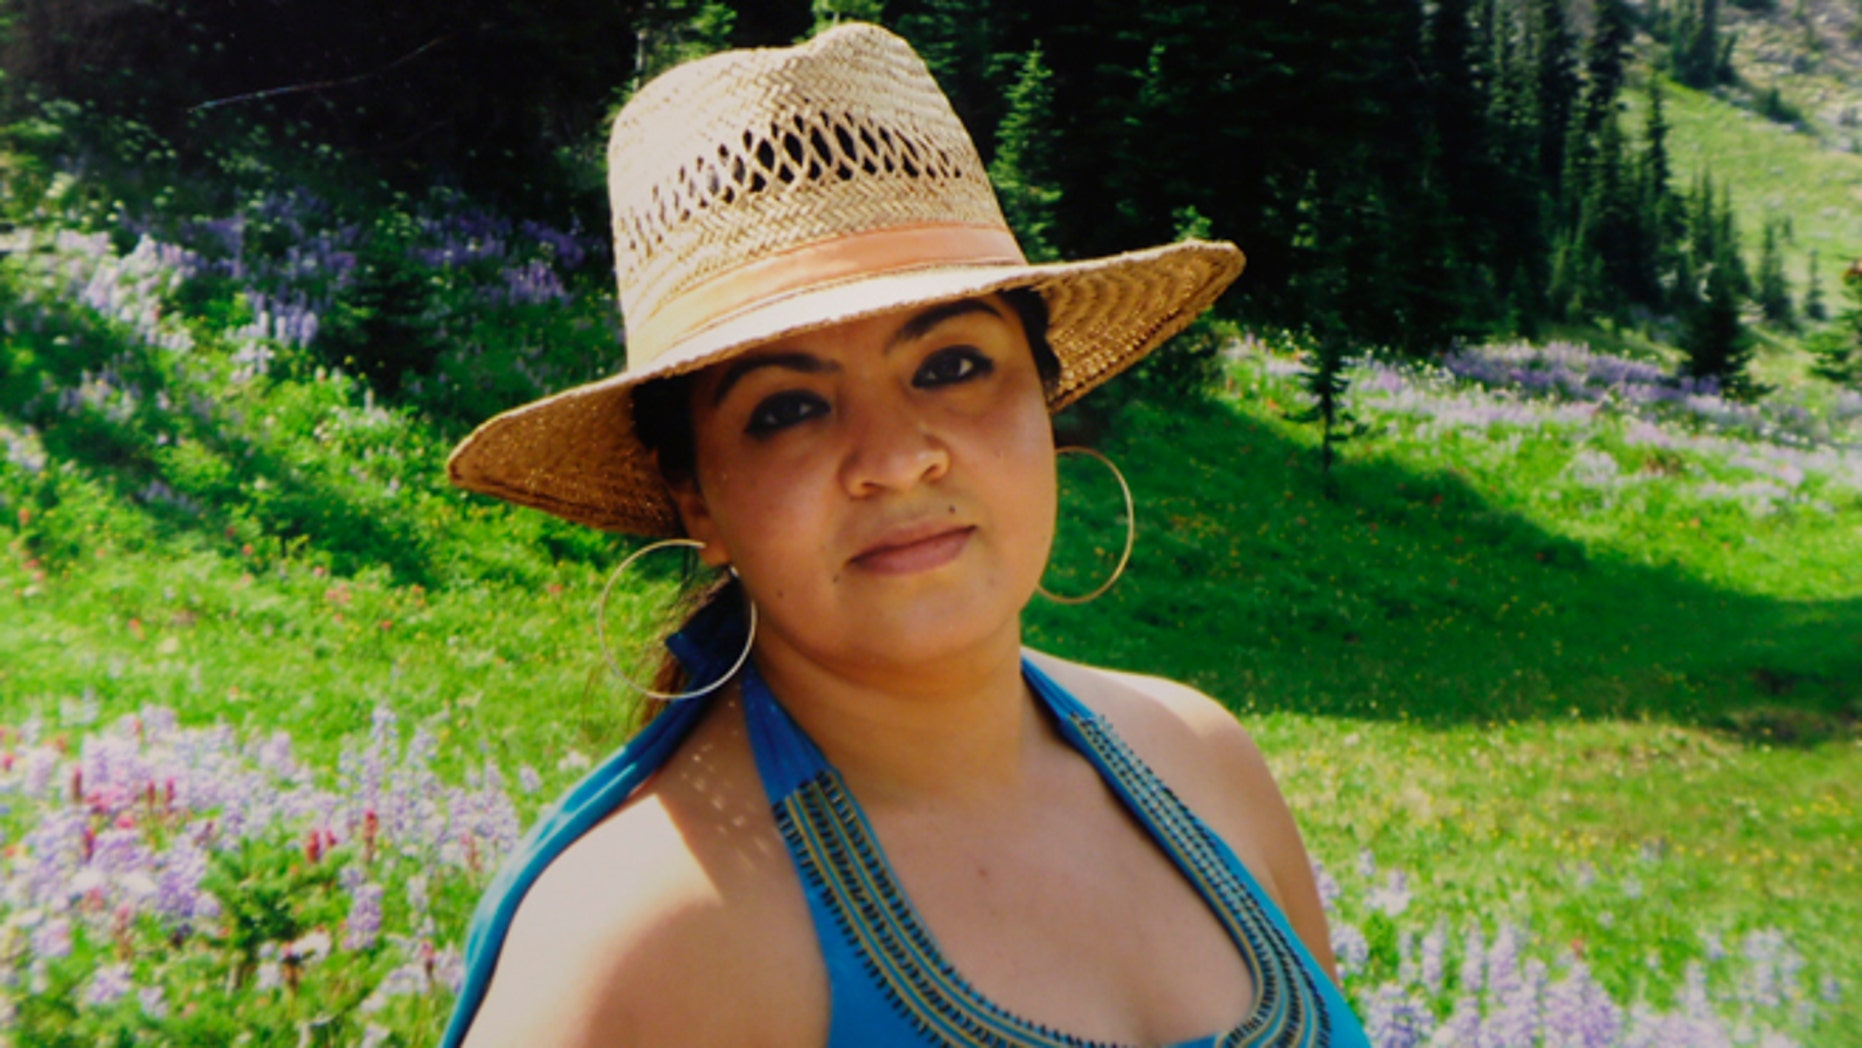 FILE - This 2009 file family photo provided by Grisel Rodriguez shows Nestora Salgado, who has been detained since she was arrested Aug. 21, 2013 in the state of Guerrero, south of Mexico City, where she had been leading a vigilante group targeting police corruption and drug cartel violence. A proposal to free a Salgado, who holds dual U.S.-Mexico nationality has become a subject of heated debate in Mexico. Victims-rights activists say freeing her would be an added offense to victims of unlawful detention. Supporters claim she is a crime-fighter and victim of a political vendetta. (AP Photo/Grisel Rodriguez, File)